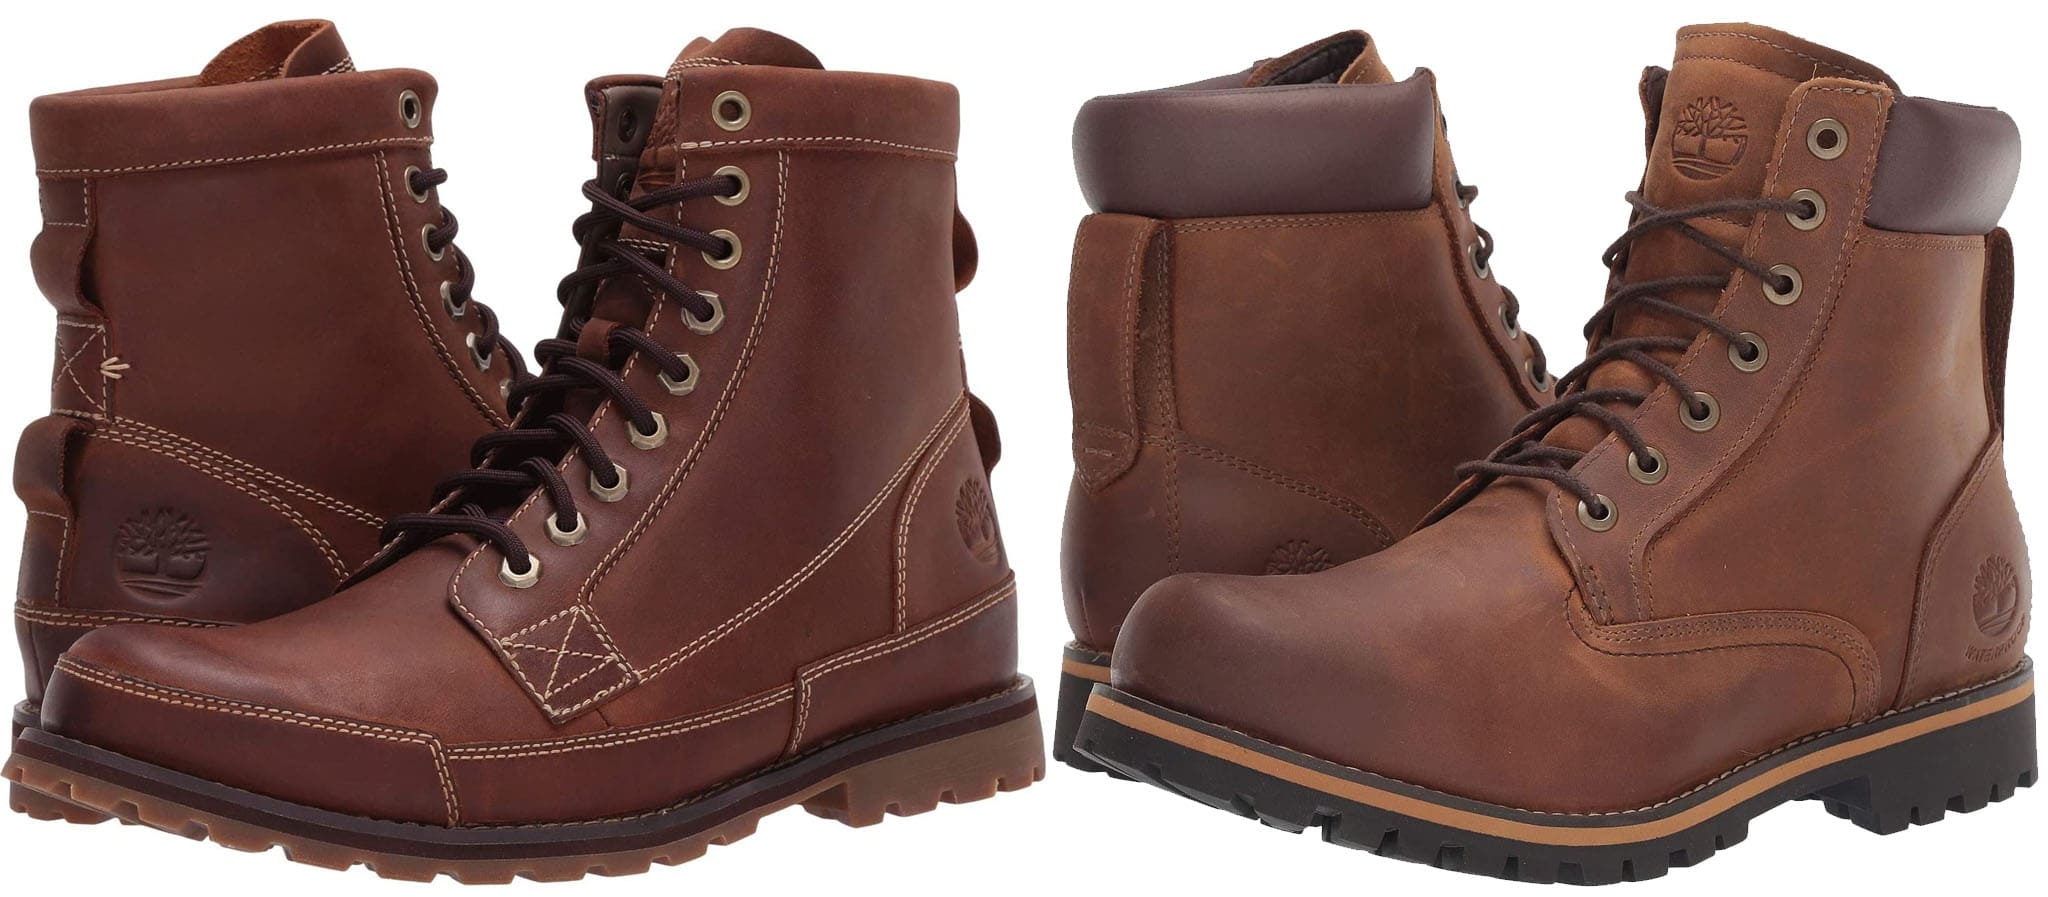 Aside from the iconic yellow boot, Timberland's Earthkeepers is also a popular style, thanks to its environmentally friendly features